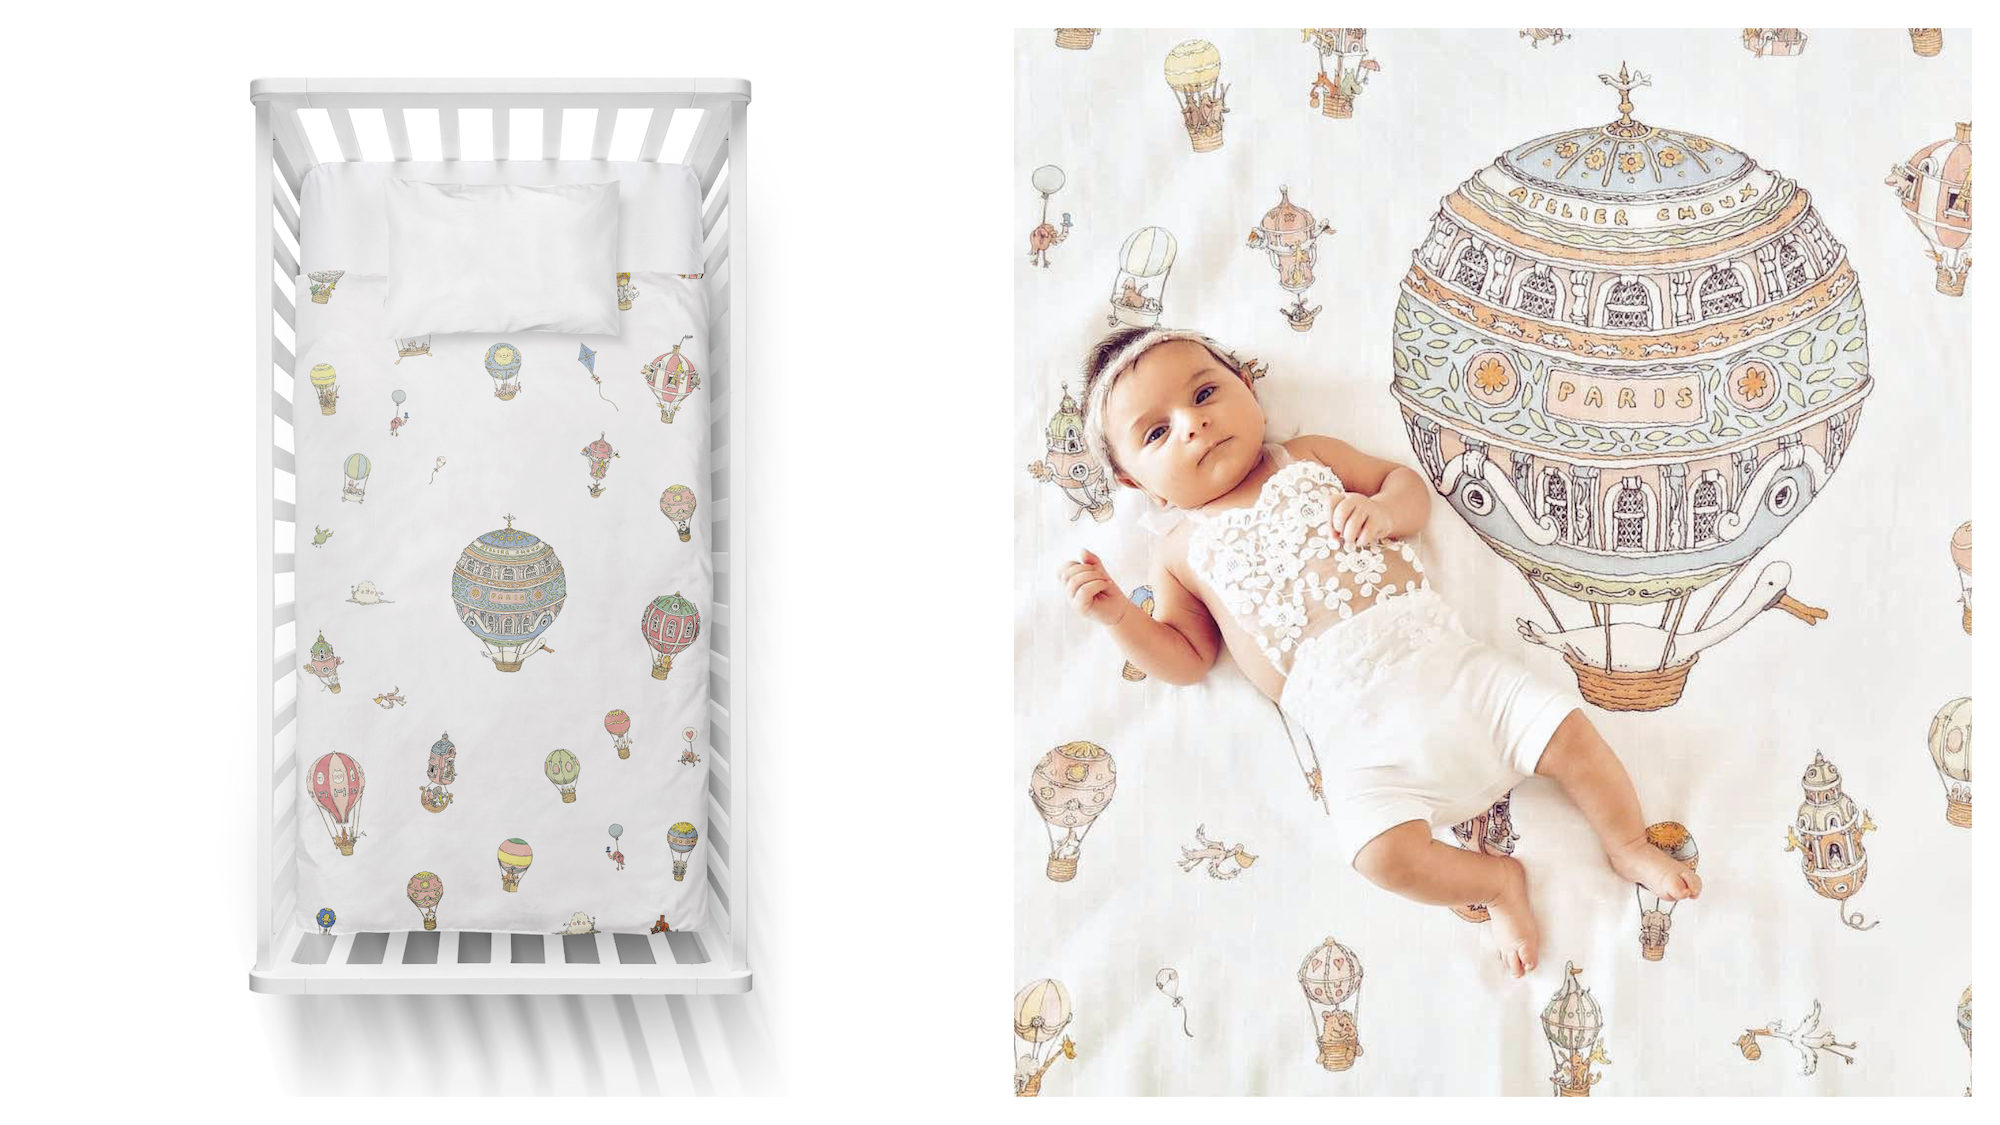 A crib with a patterned mattress with hot air balloons on it from Atelier Choux (left). A baby lying on a hot air balloon blanket (right).